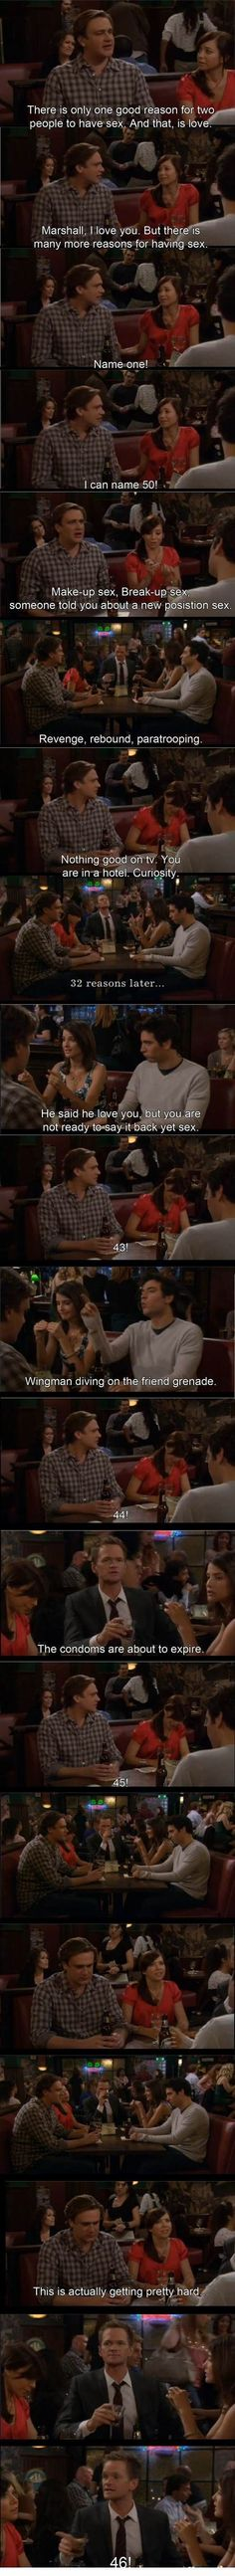 HIMYM - 50 reasons for sex.